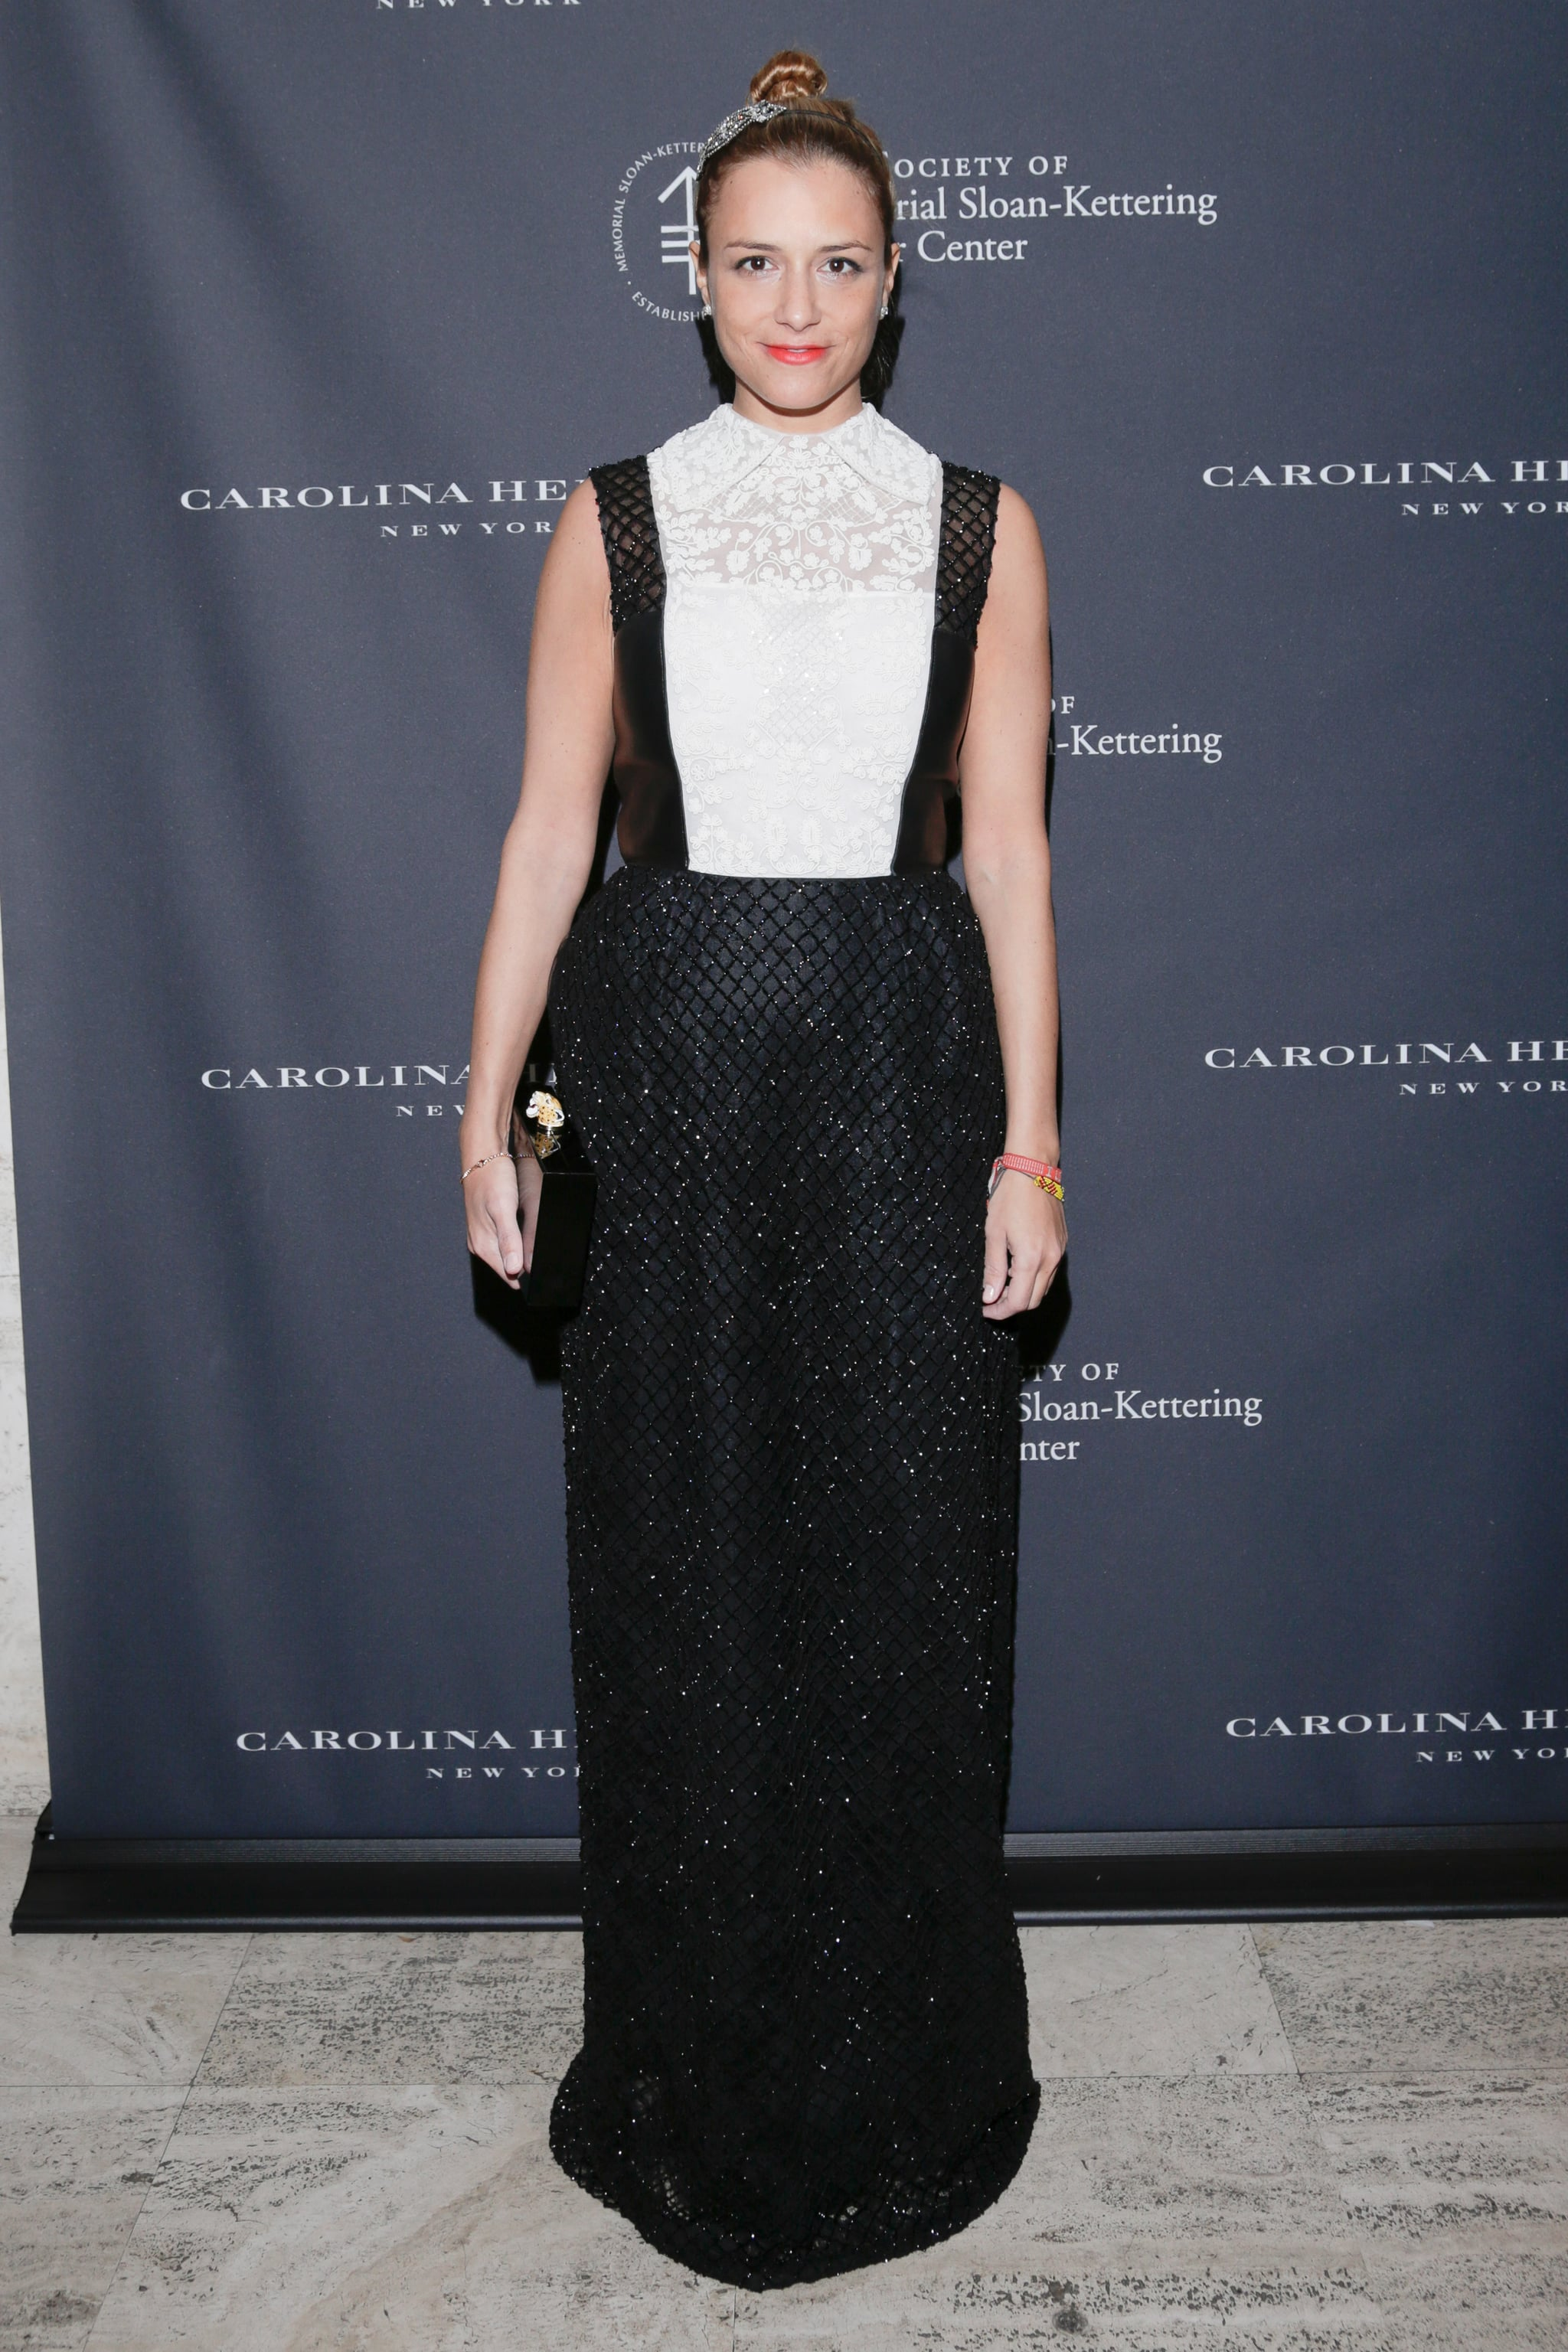 Charlotte Ronson in Valentino at The Society of Memorial Sloan-Kettering Cancer Center's Fall Party.